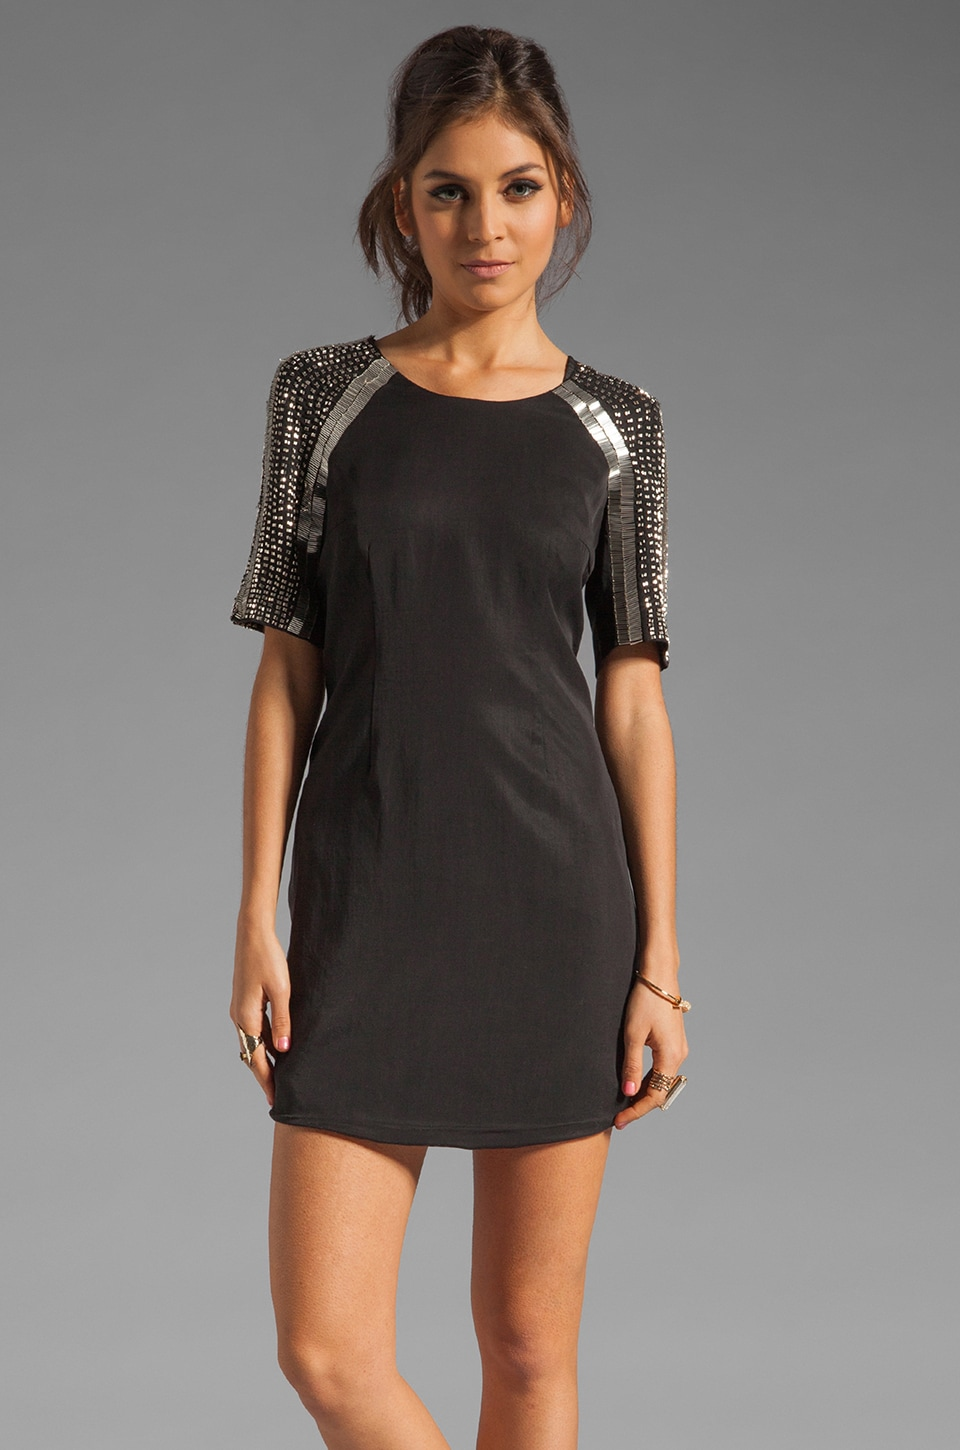 keepsake A Million Miles Away Dress in Black